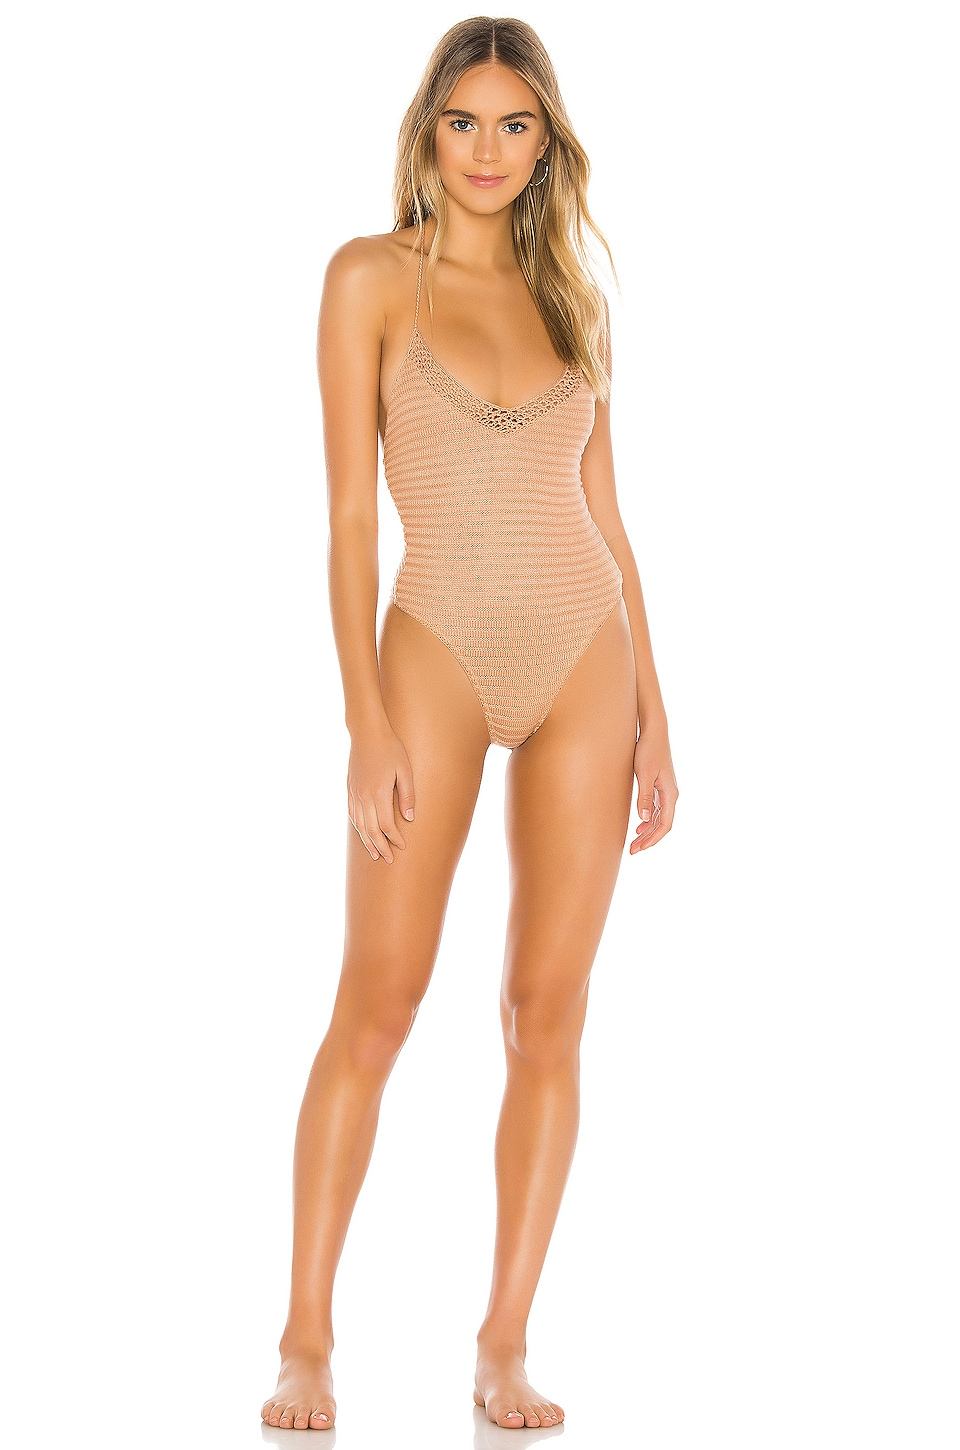 lovewave Bayside One Piece in Natural